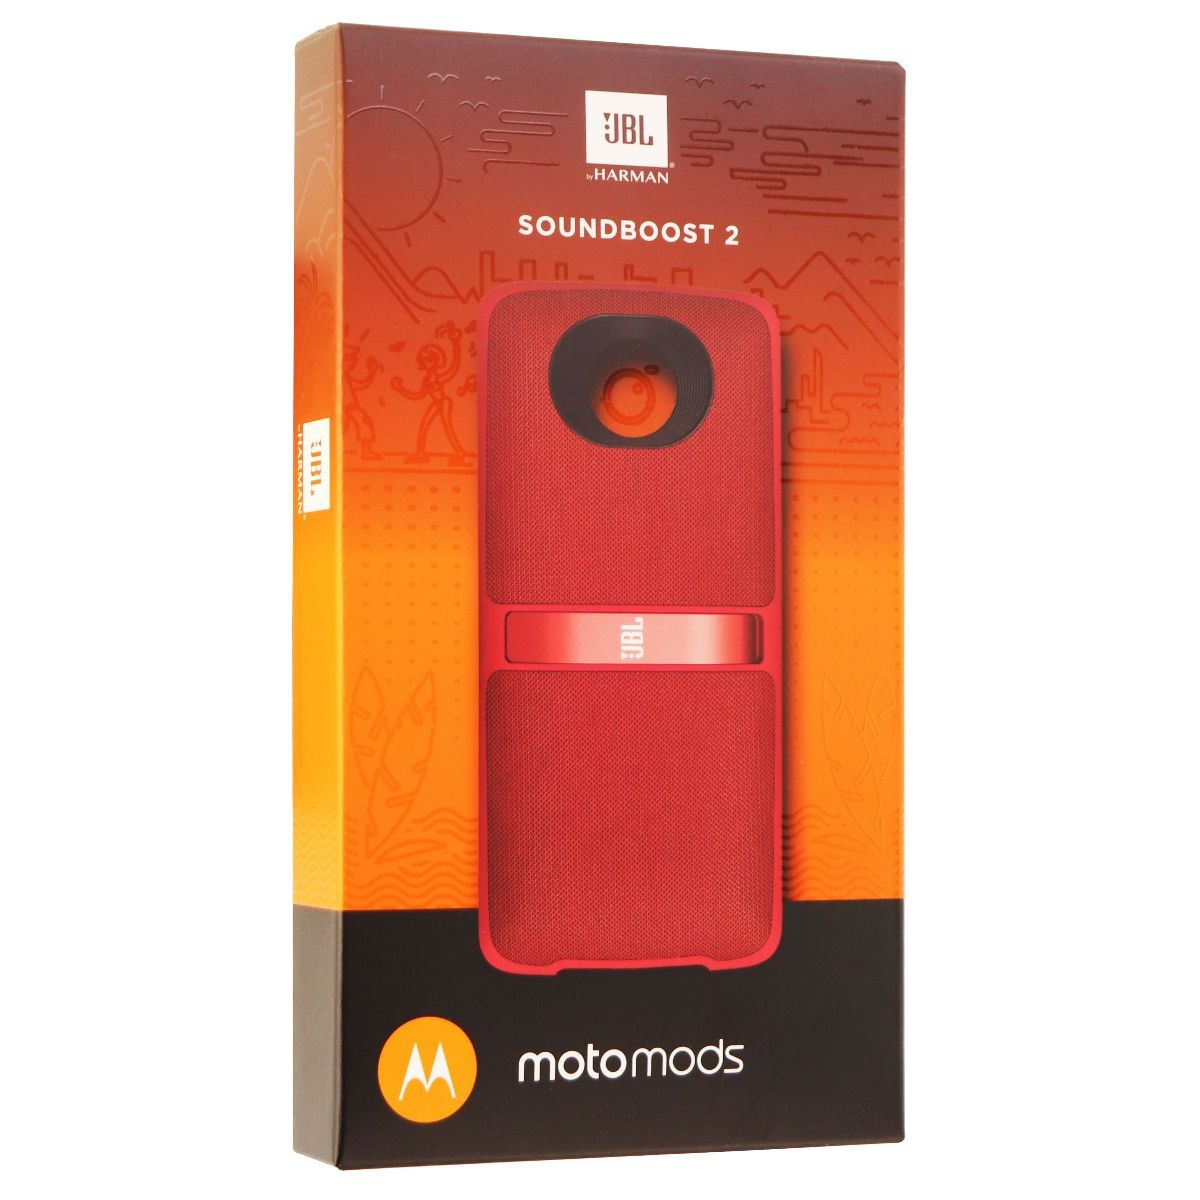 JBL MotoMod Soundboost 2 Audio Speaker Mod for Motorola Moto Z Phones - Red